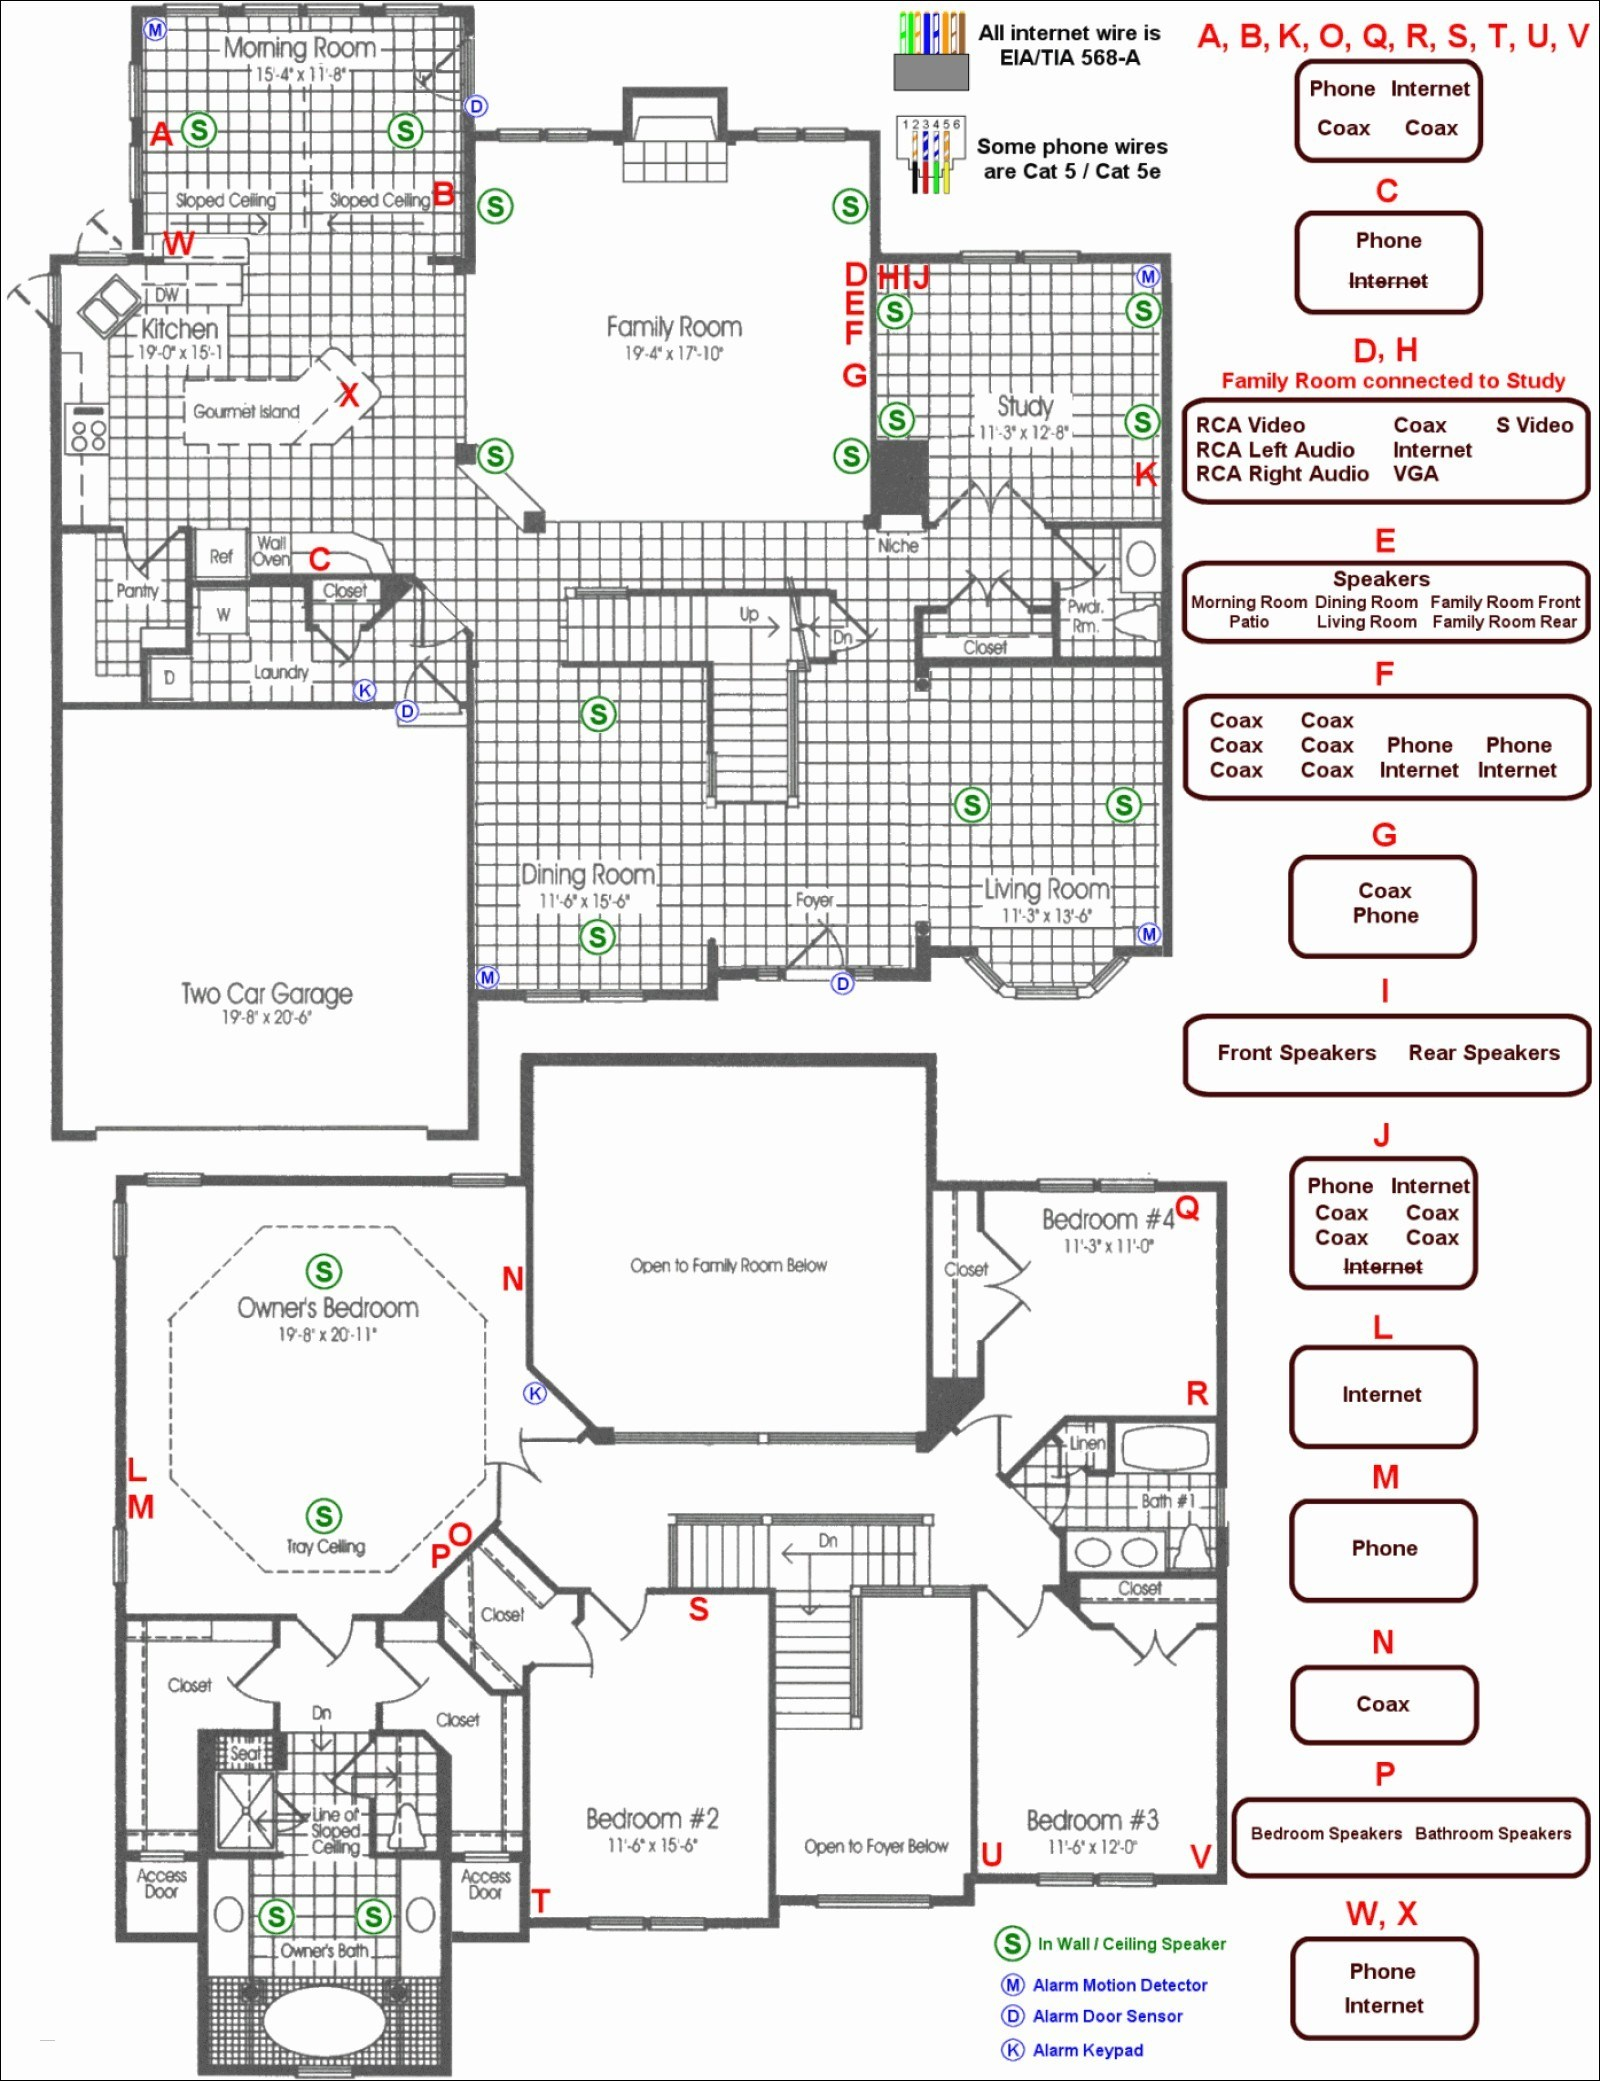 phone wiring diagram Download-home wiring diagram Collection Aktive Crossoverfrequenzweiche Mit Max4478 360customs Crossover Schematic Rev 0d wiring lighting 13-d